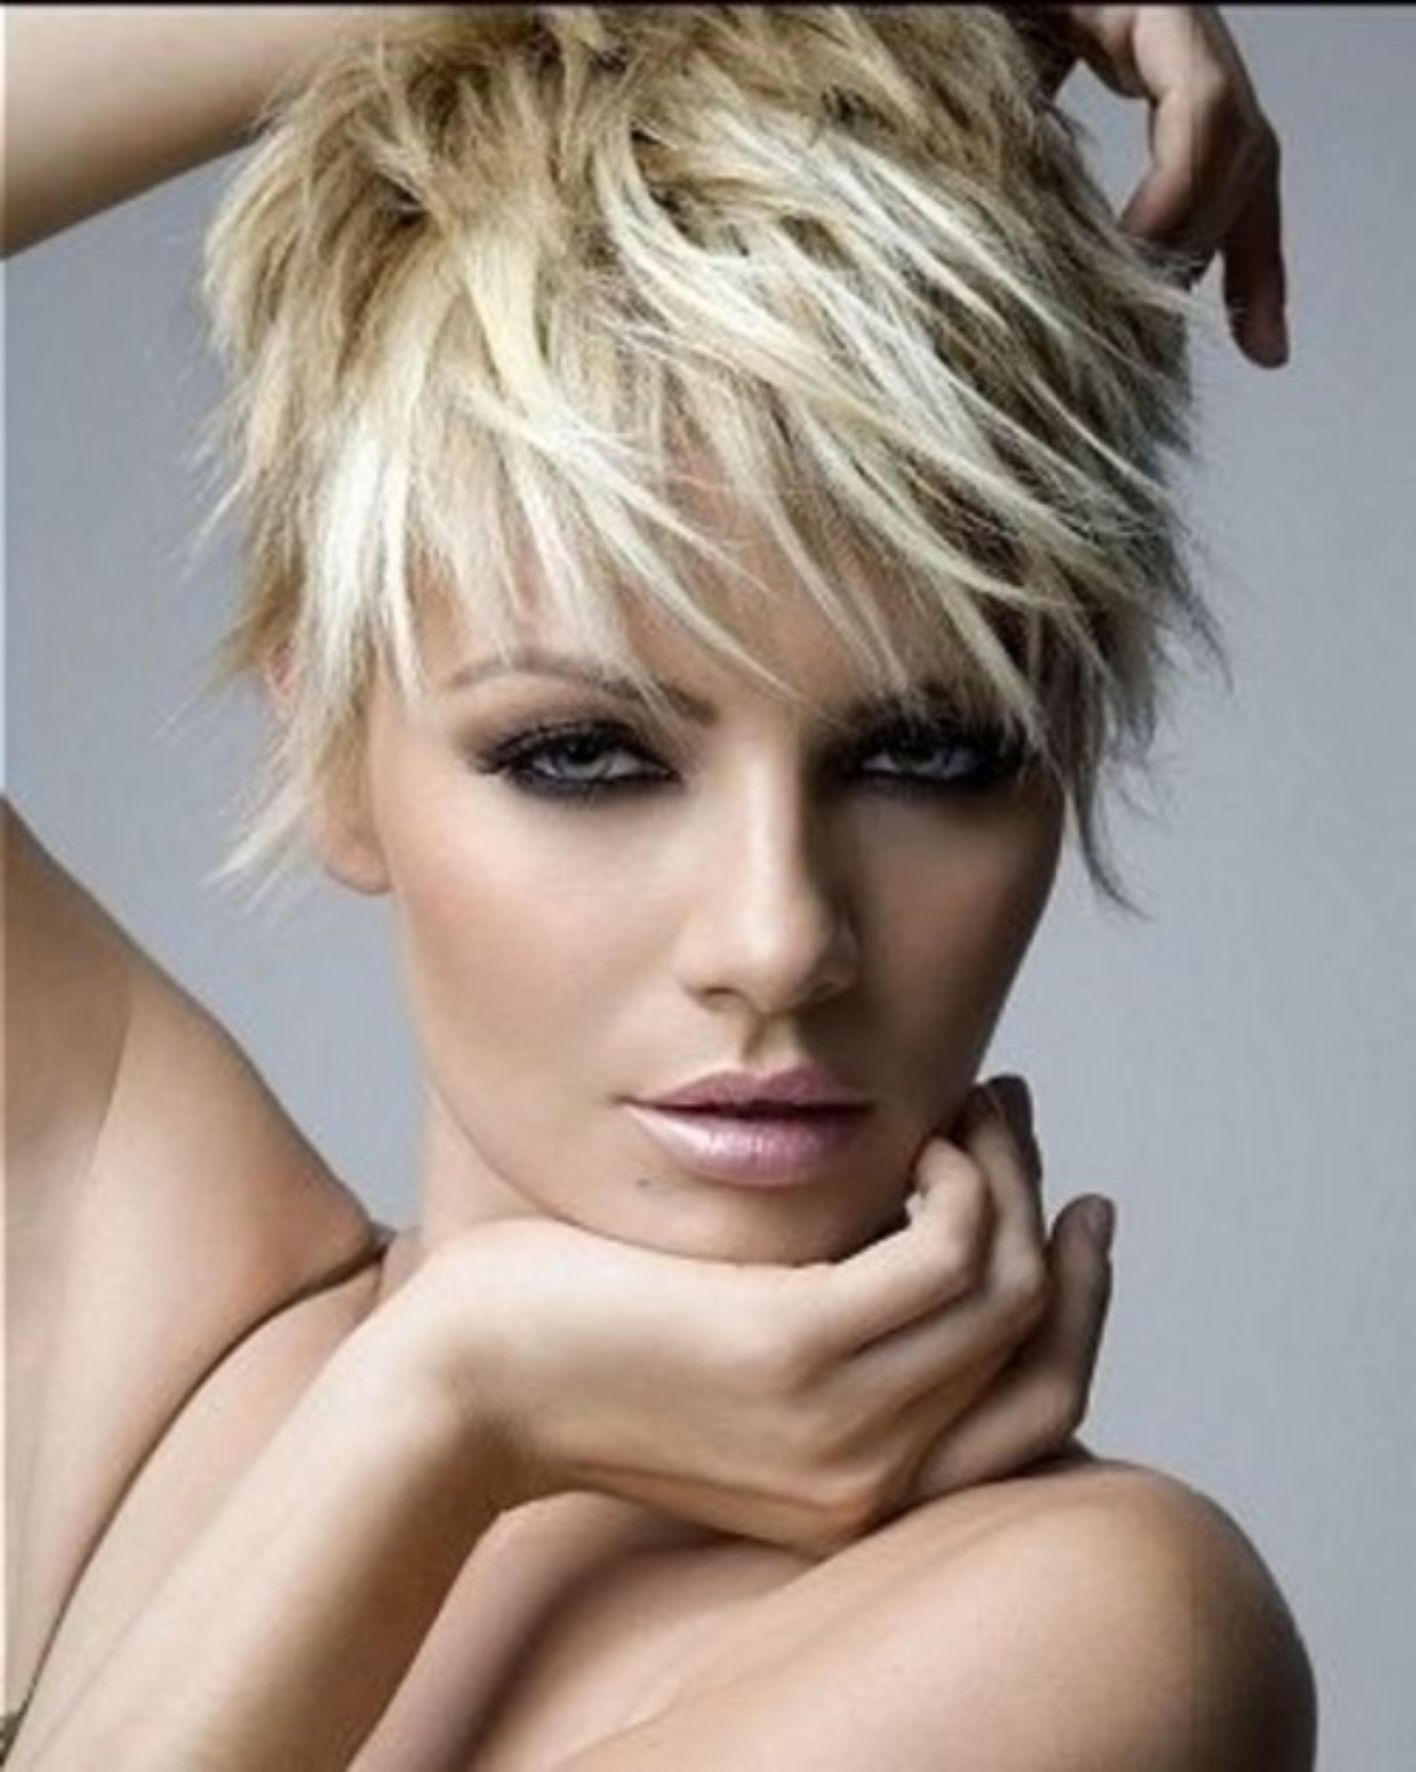 70 Overwhelming Ideas For Short Choppy Haircuts | Hot With In Messy Spiky Pixie Haircuts With Asymmetrical Bangs (Gallery 9 of 20)